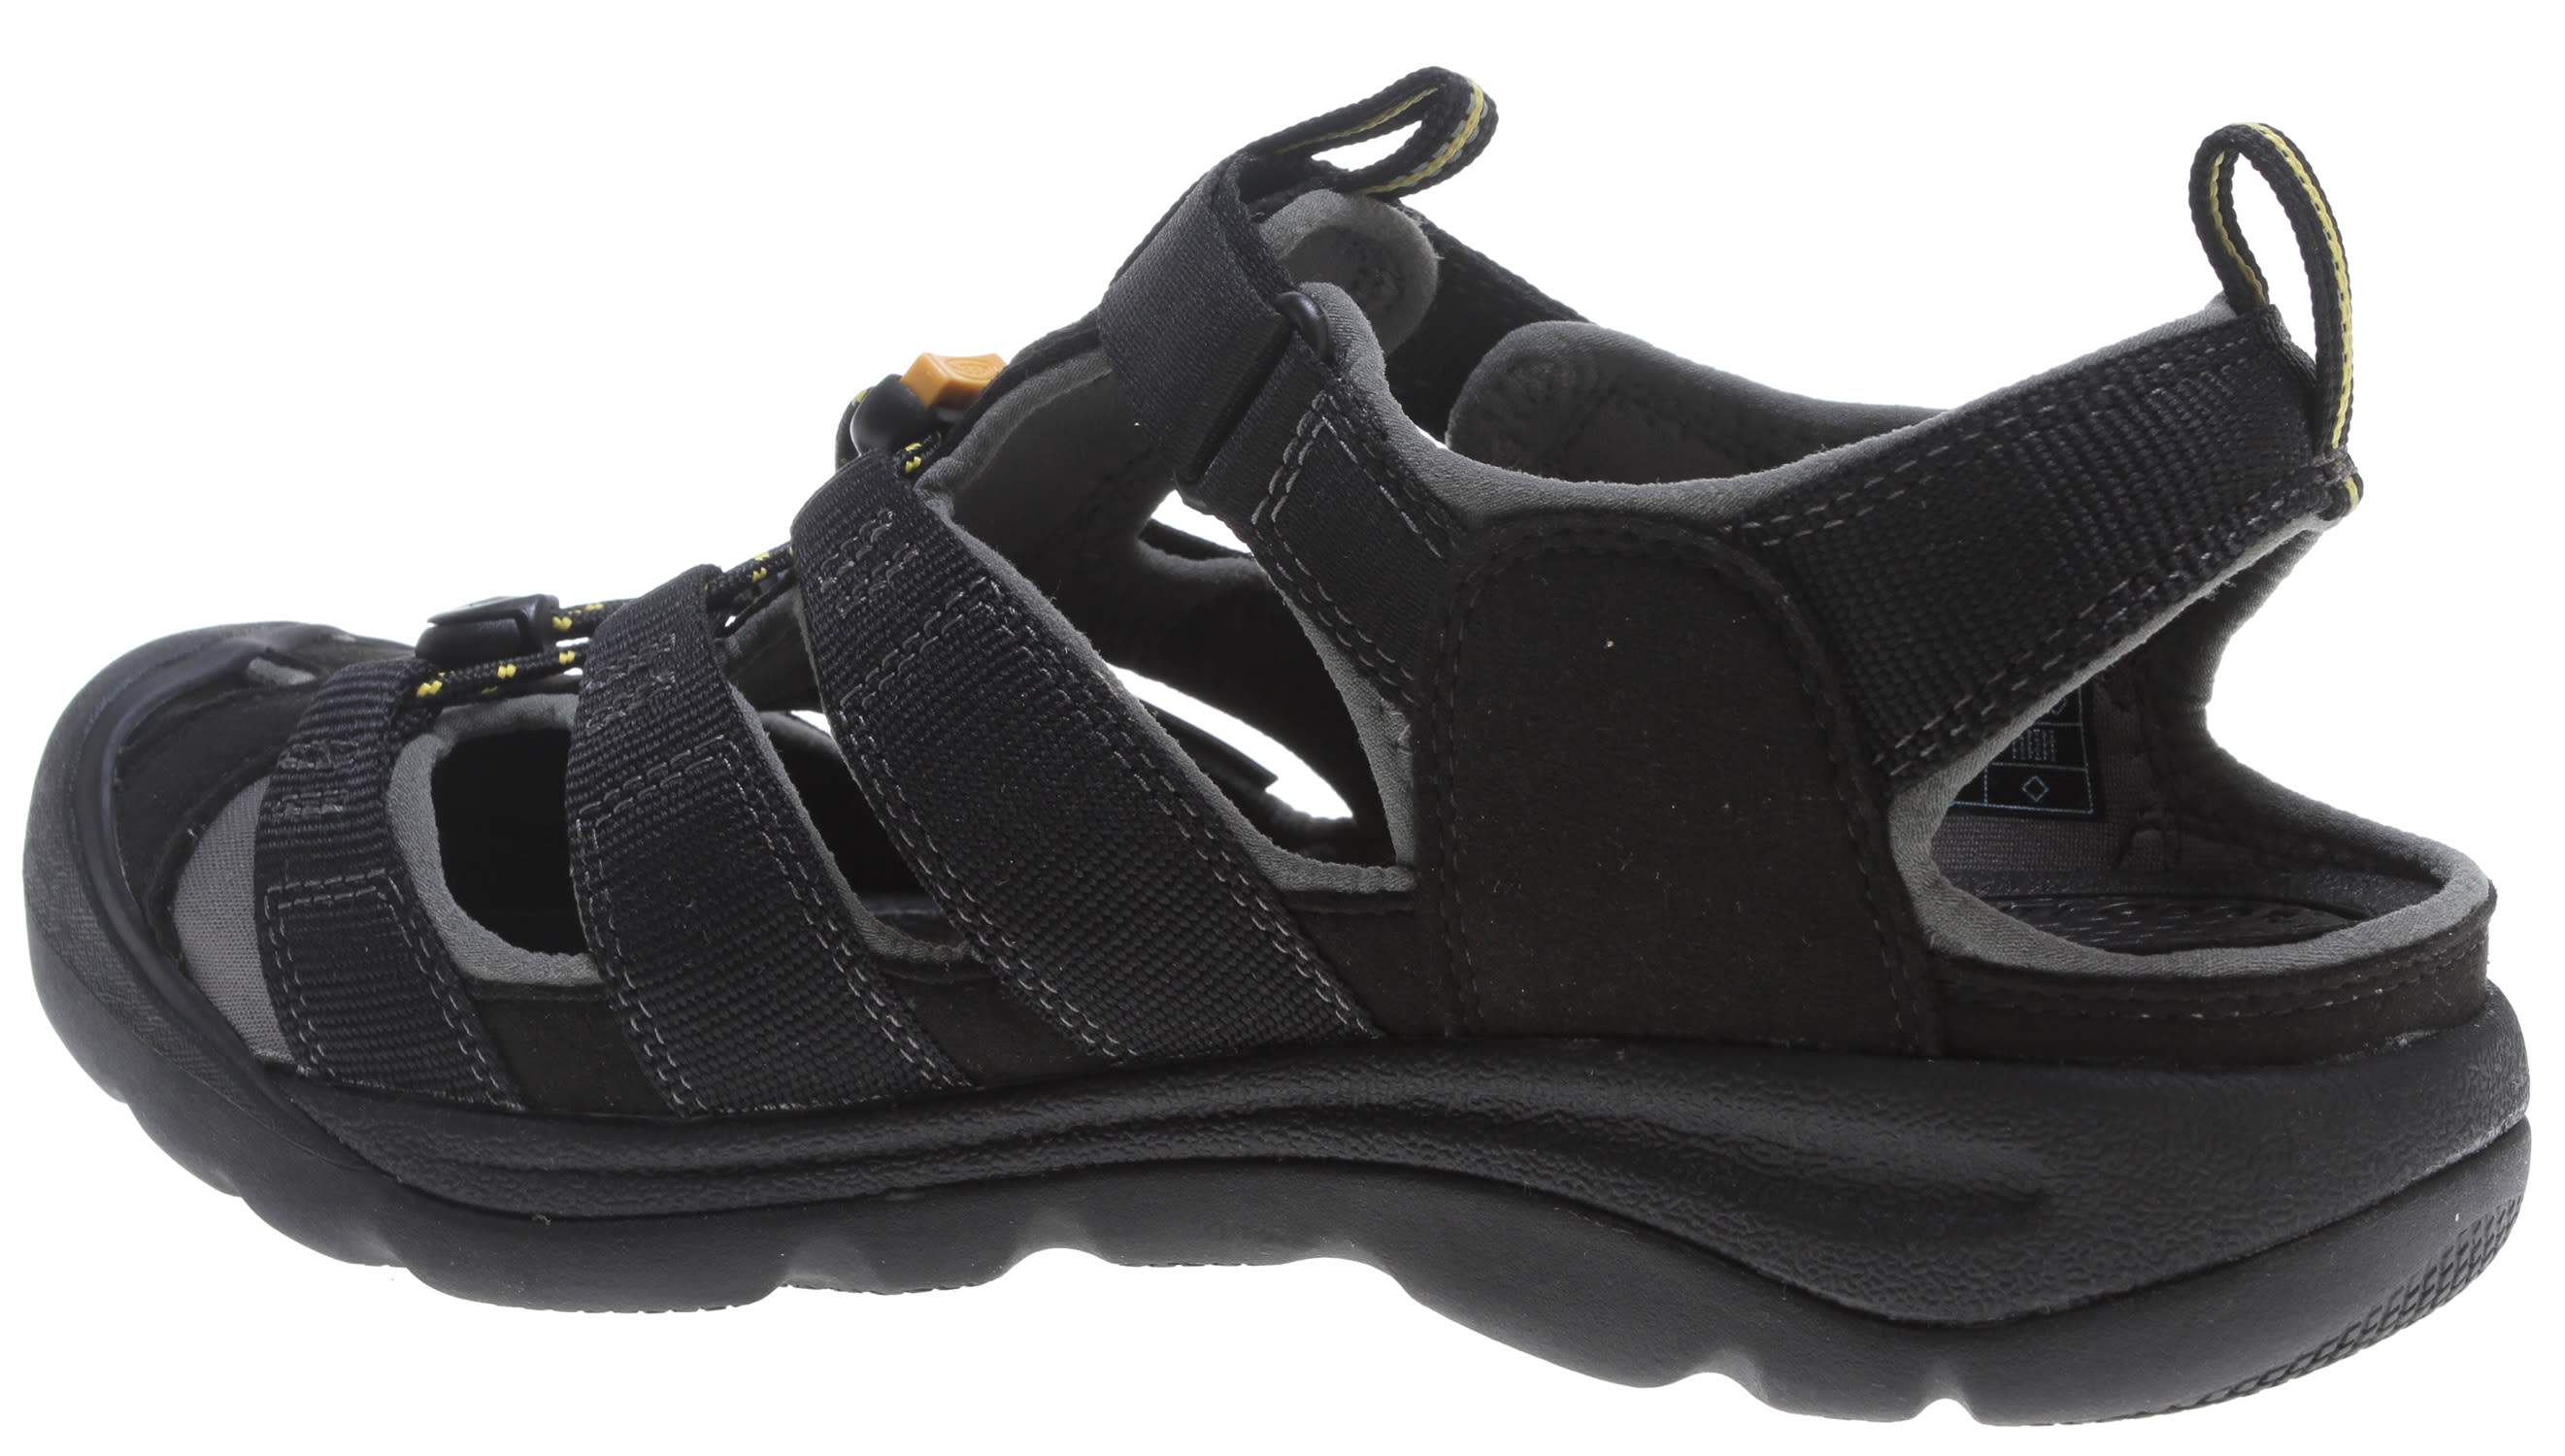 Keen Commuter Iii Bike Sandals